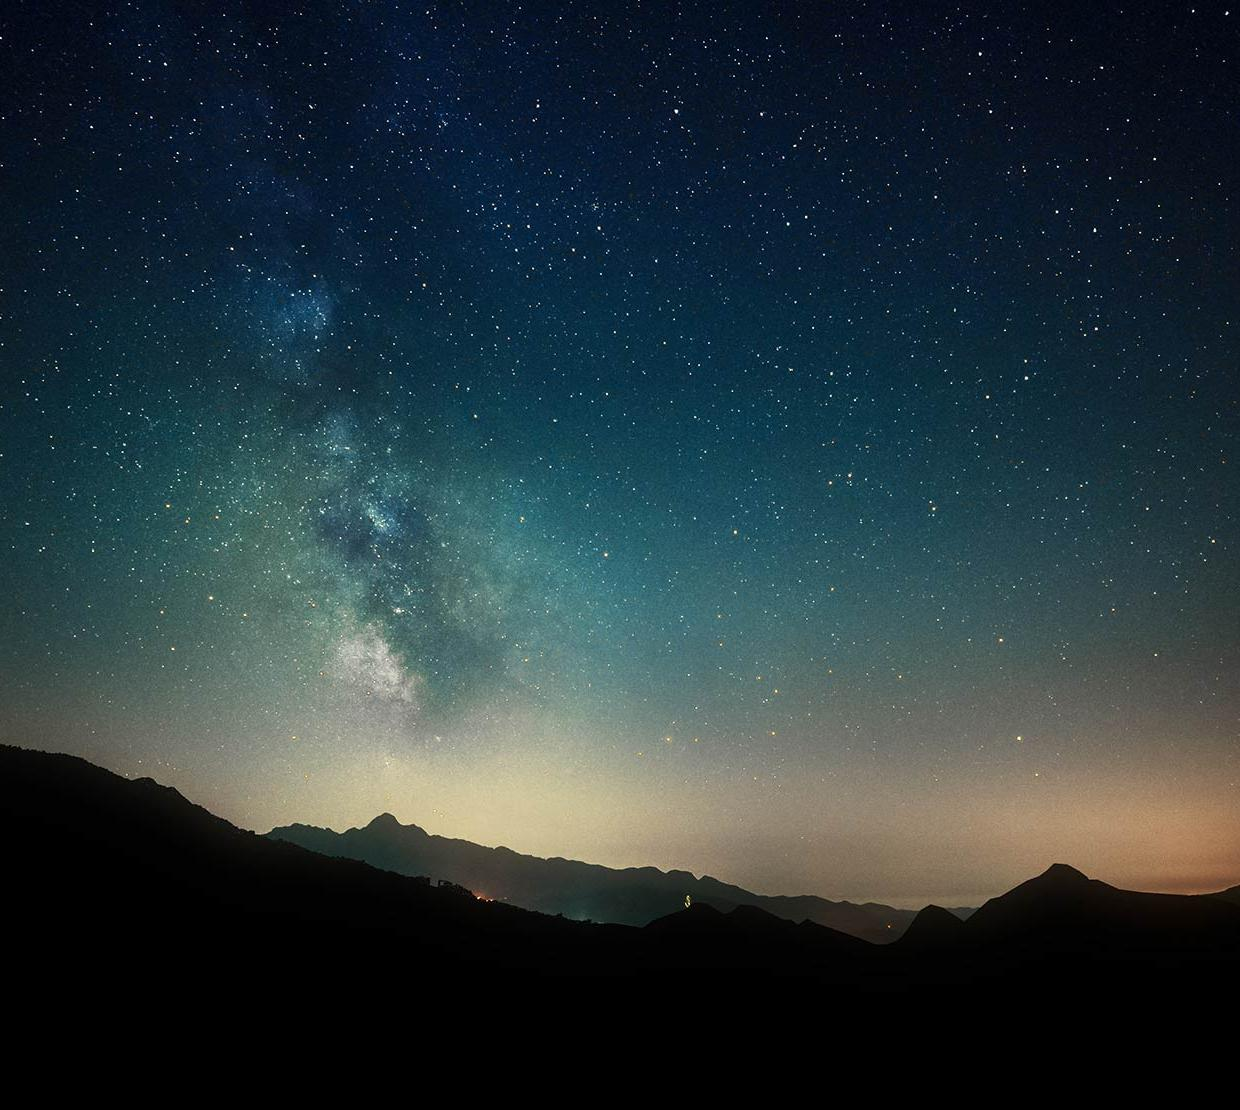 Starry time-lapse over mountain range